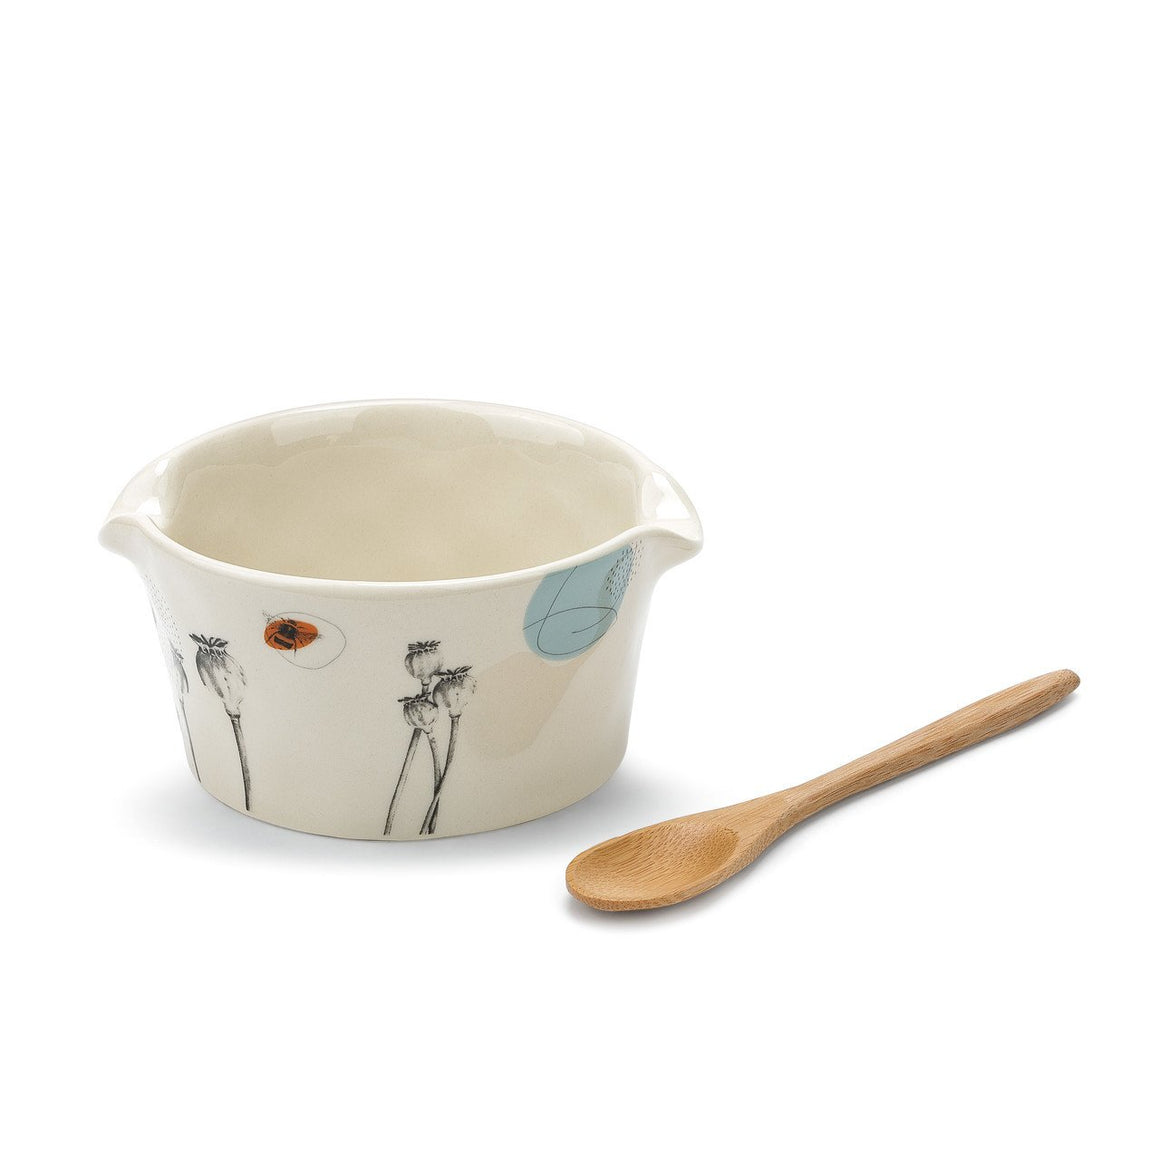 Nibbles Appetizer Bowl with Spoon